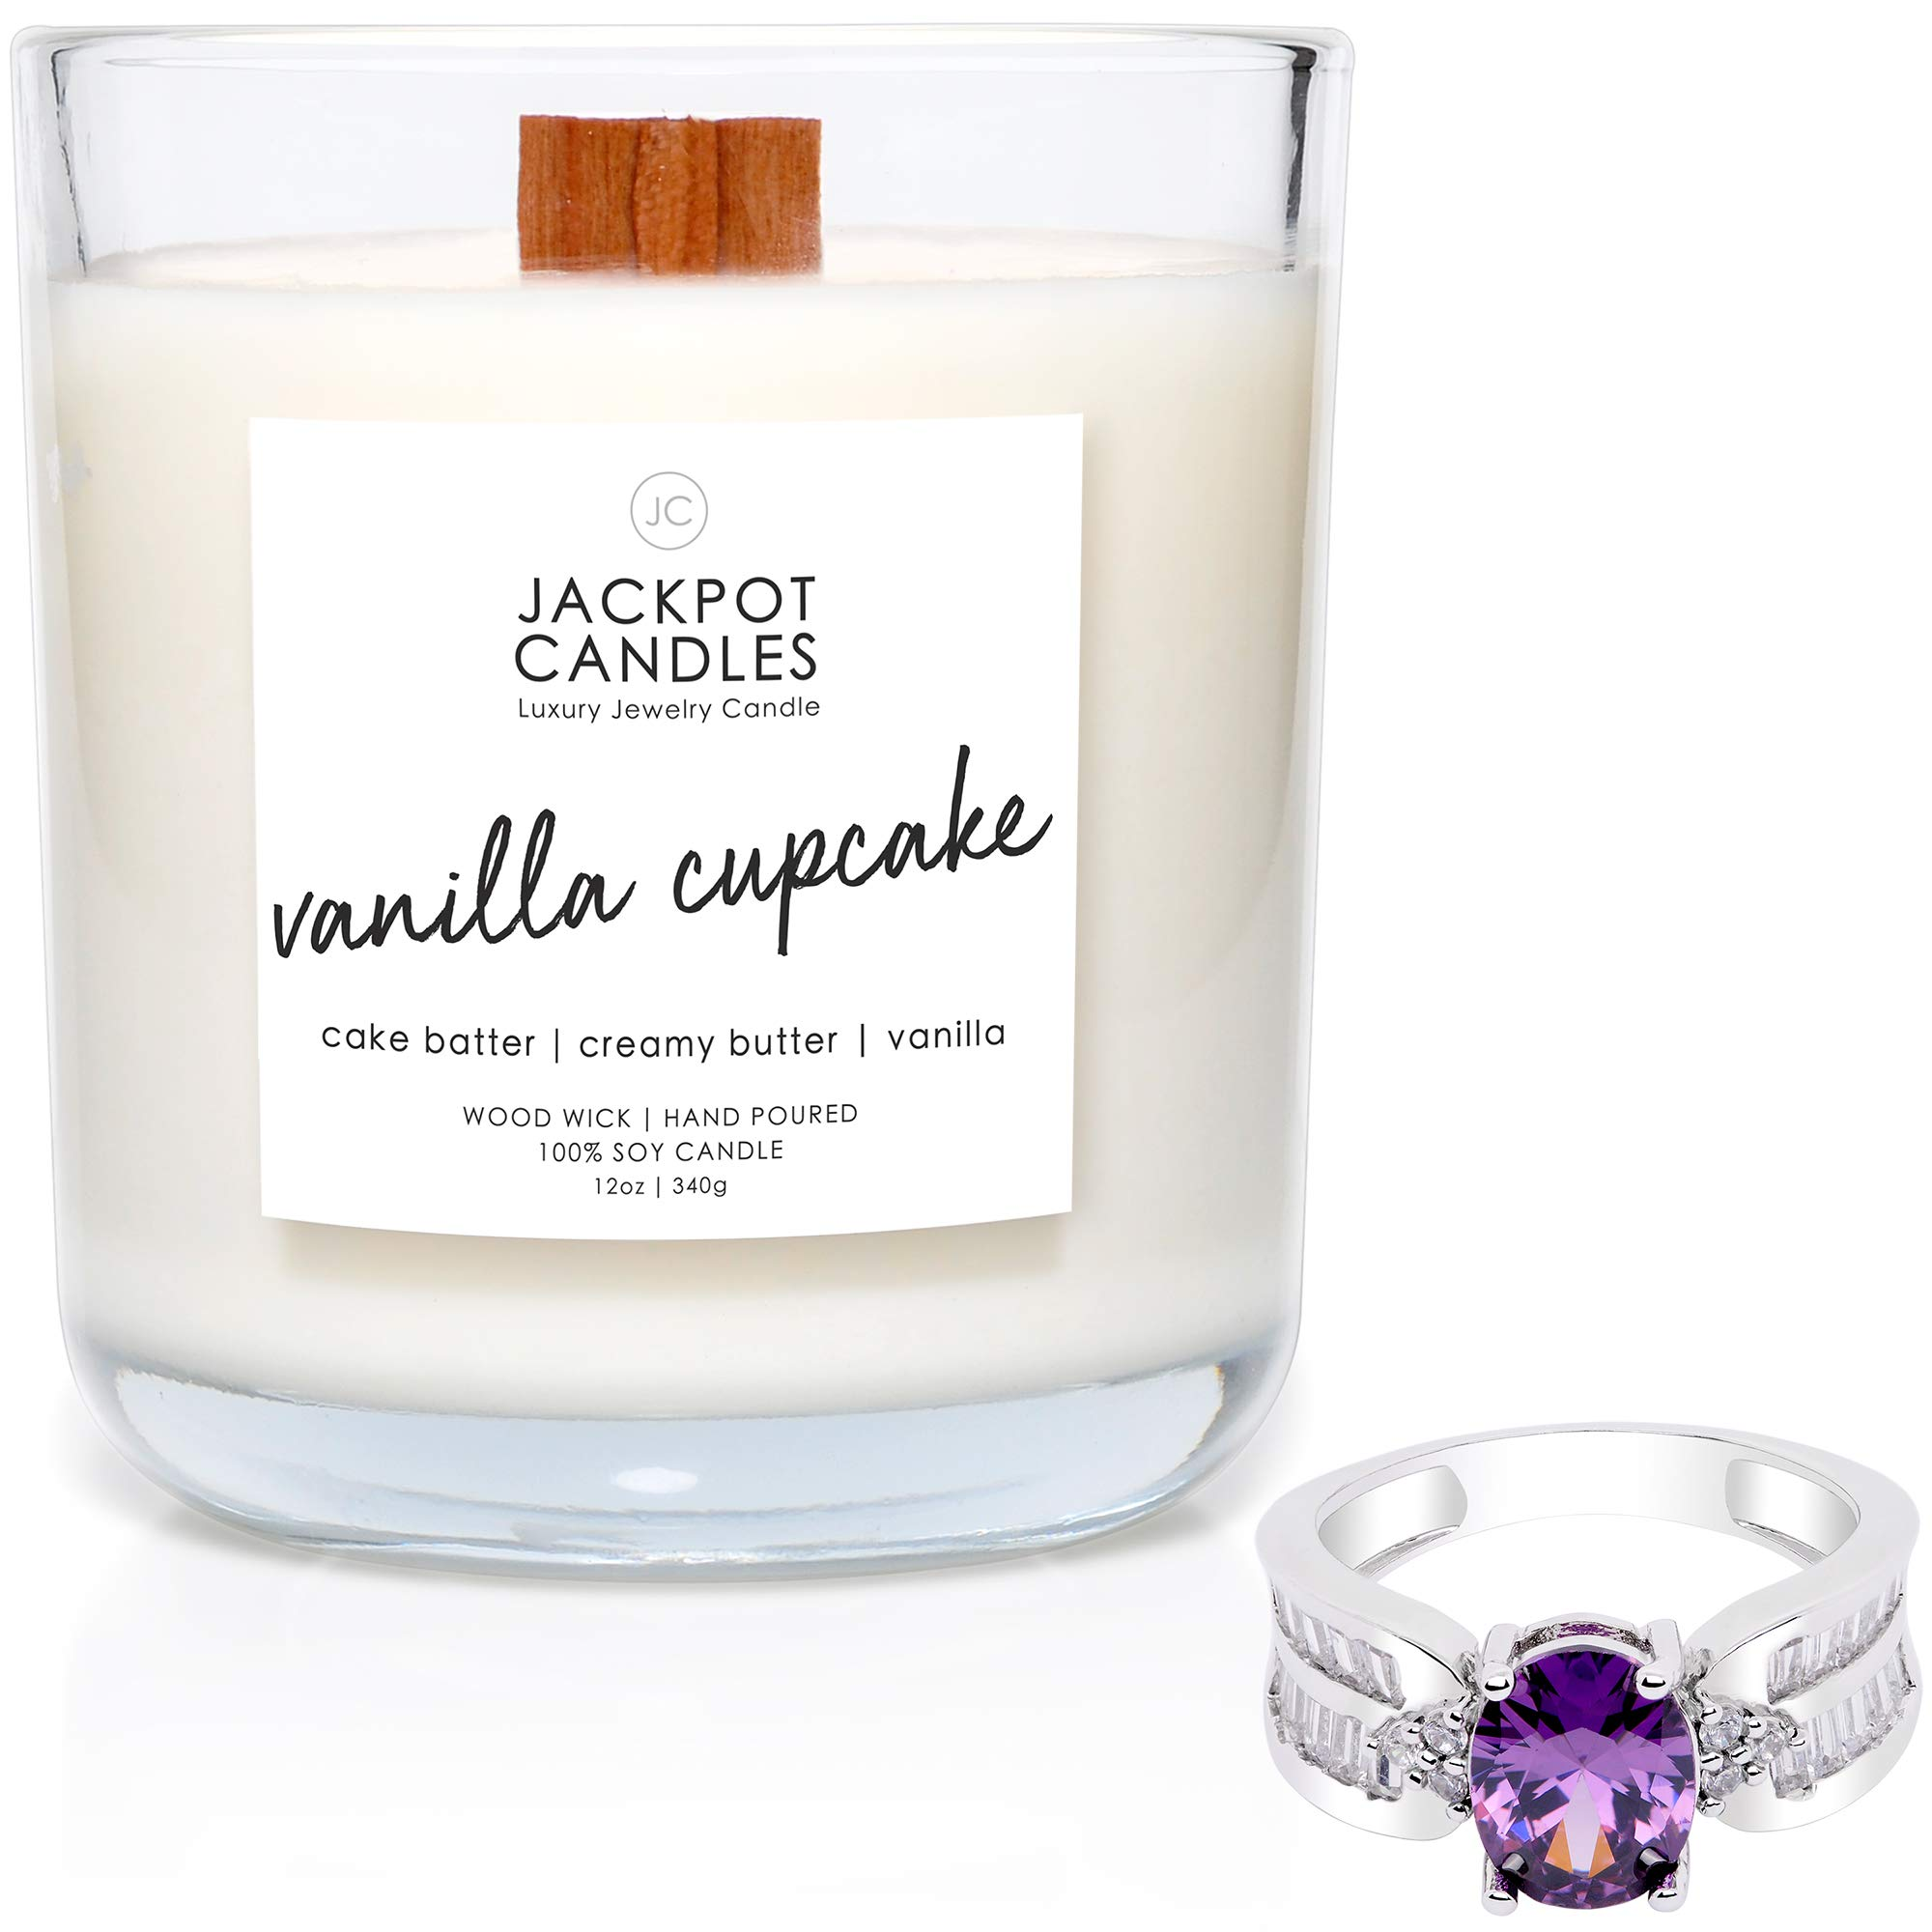 Jackpot Candles Vanilla Cupcake Candle with Ring Inside (Surprise Jewelry Valued at $15 to $5,000) Surprise Ring Size by Jackpot Candles